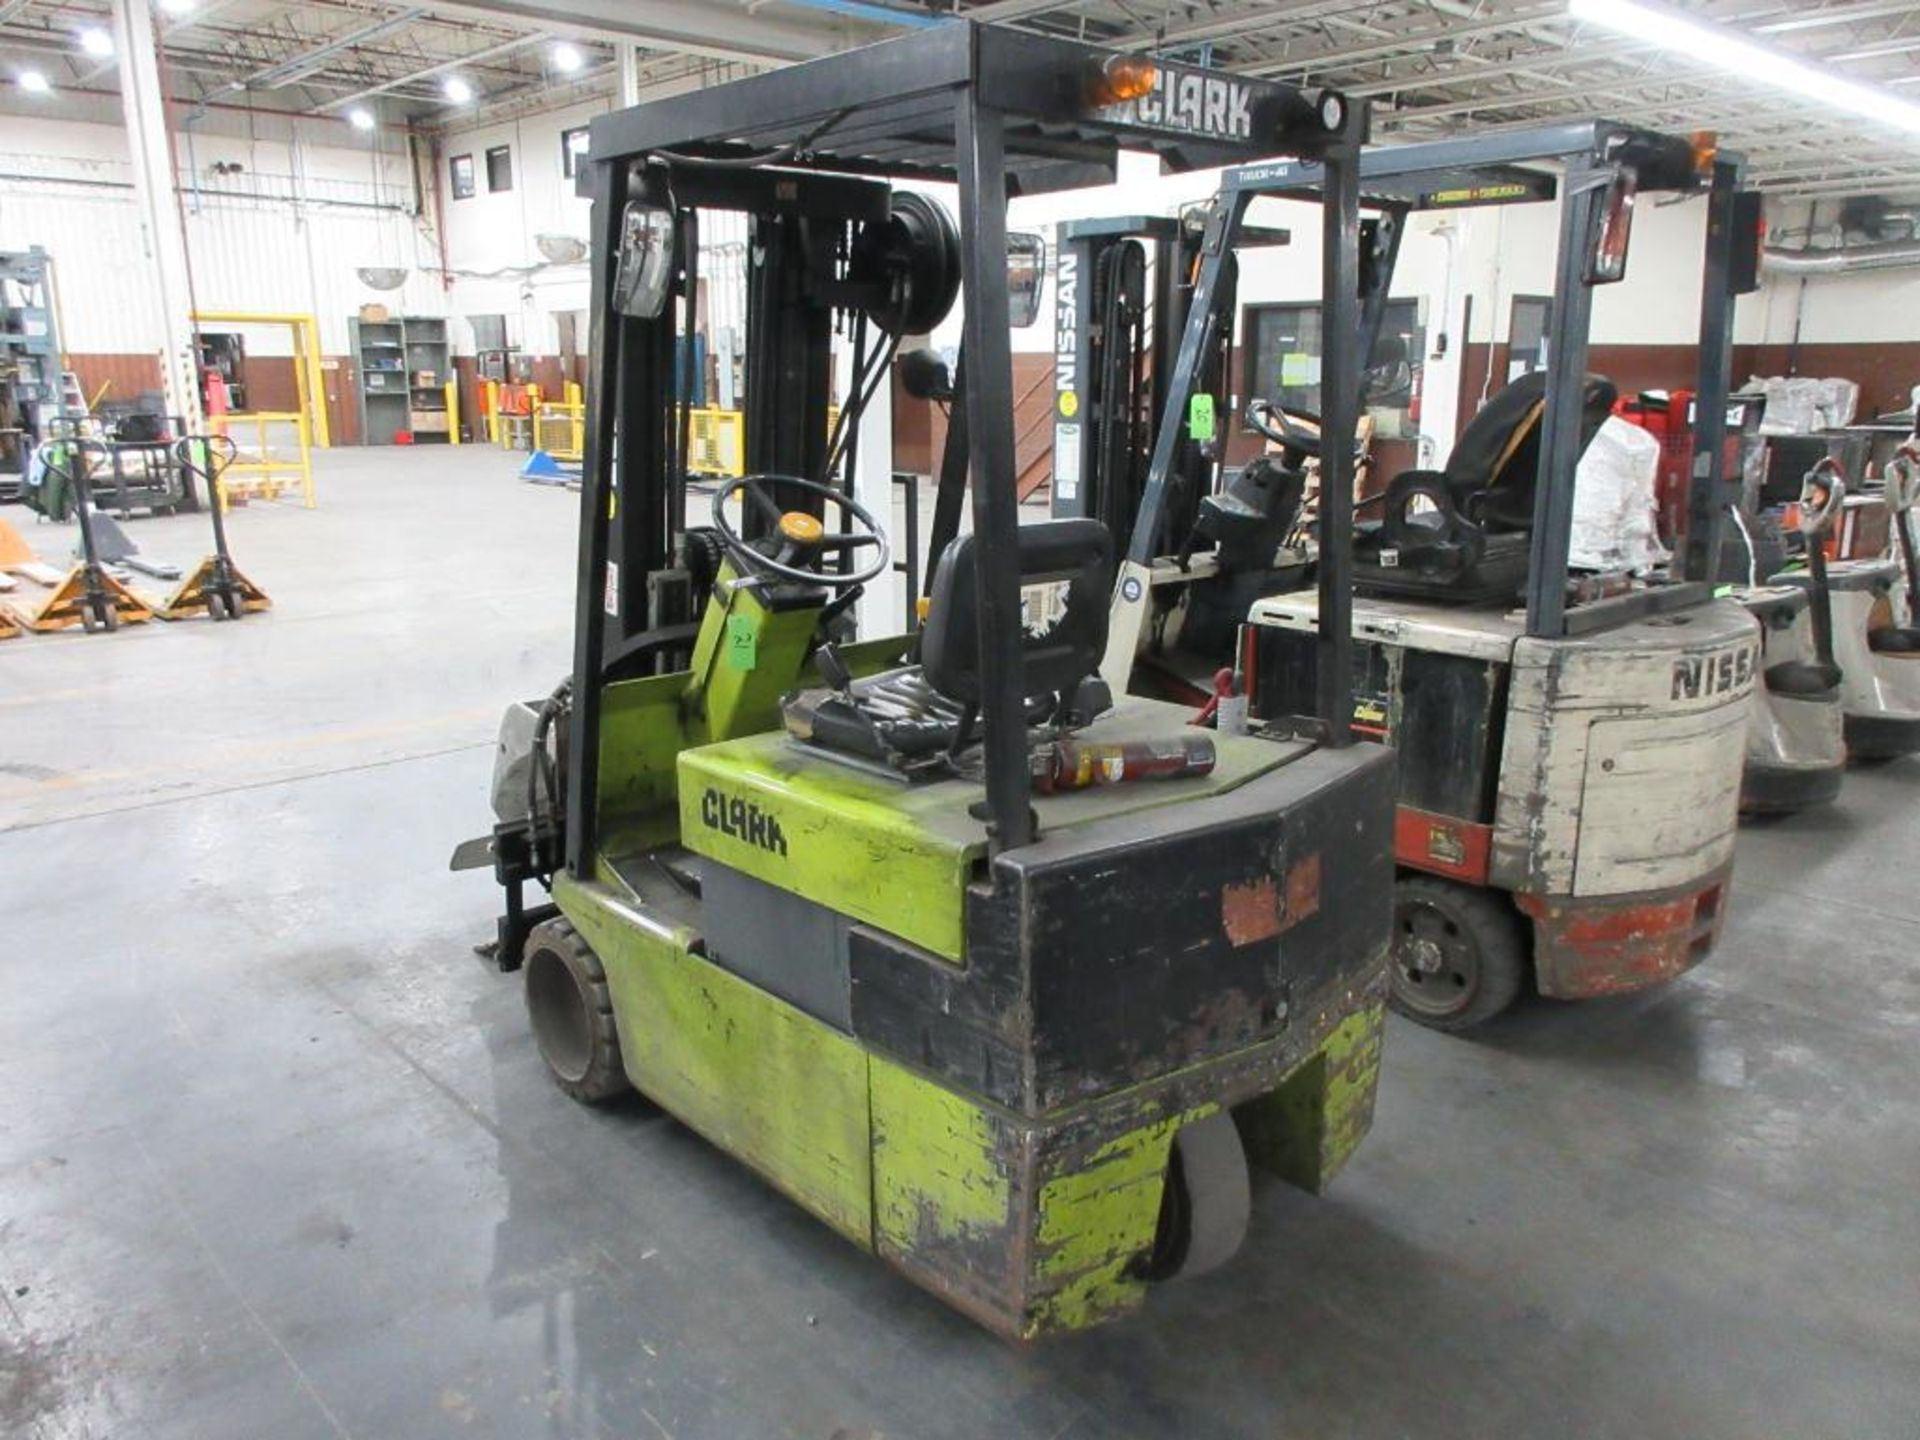 """Clark 4,500 lb capacity, 3 wheel electric clamp forklift, model TM25, 3 stage mast, 186"""" lift height - Image 6 of 10"""